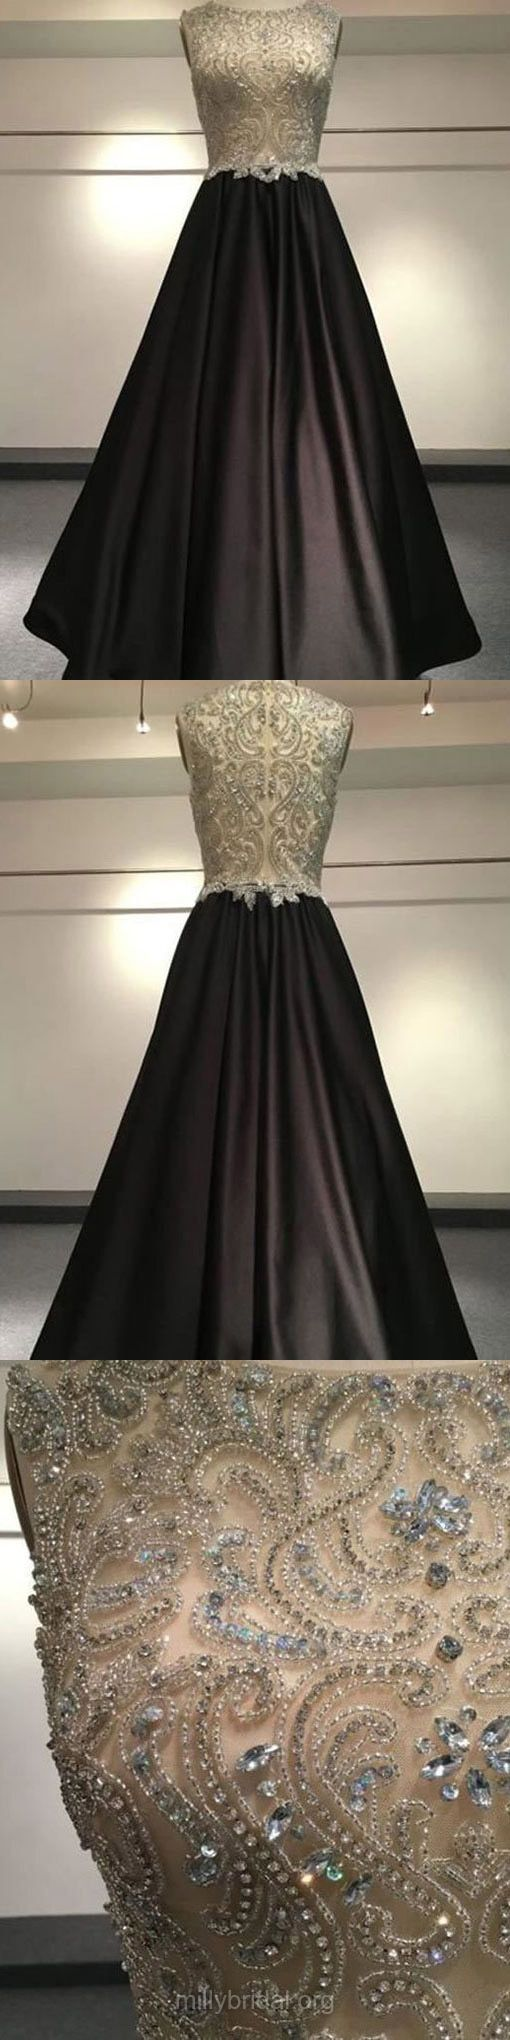 Black Prom Dresses Long, Cheap Prom Dresses For Teens 2018, Princess Evening Party Dresses Scoop Neck, Satin Tulle Formal Pageant Dresses Beading